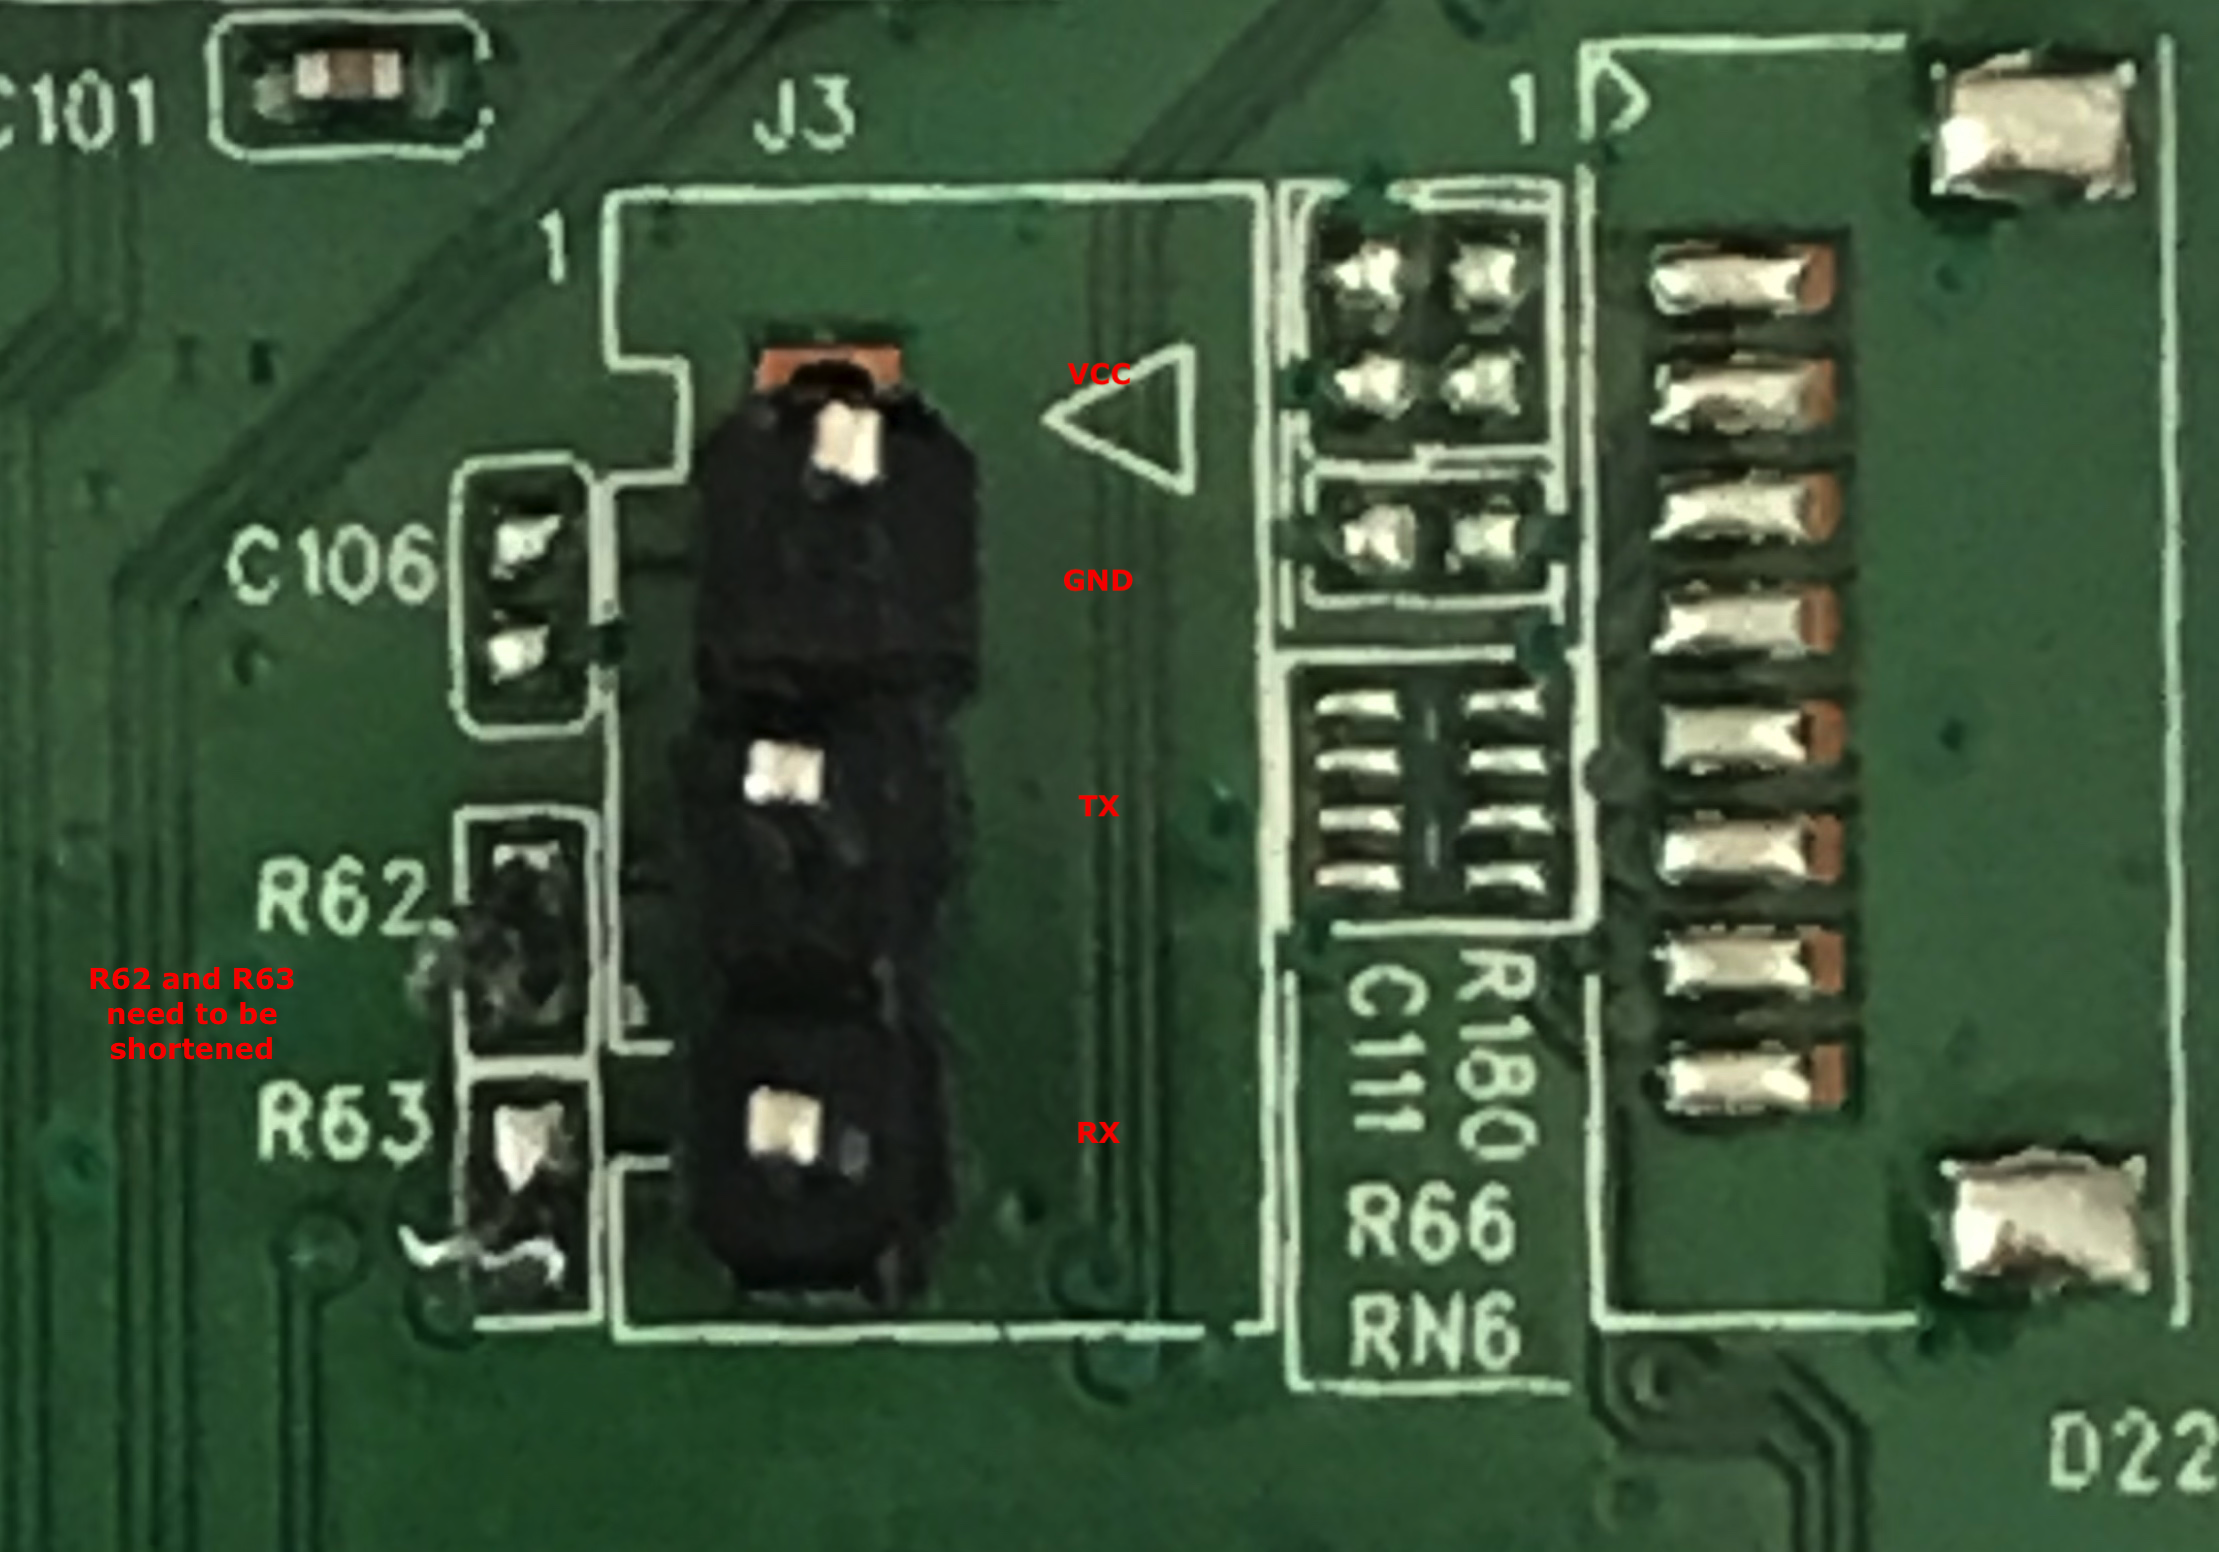 Reverse engineering the router Technicolor TG582N